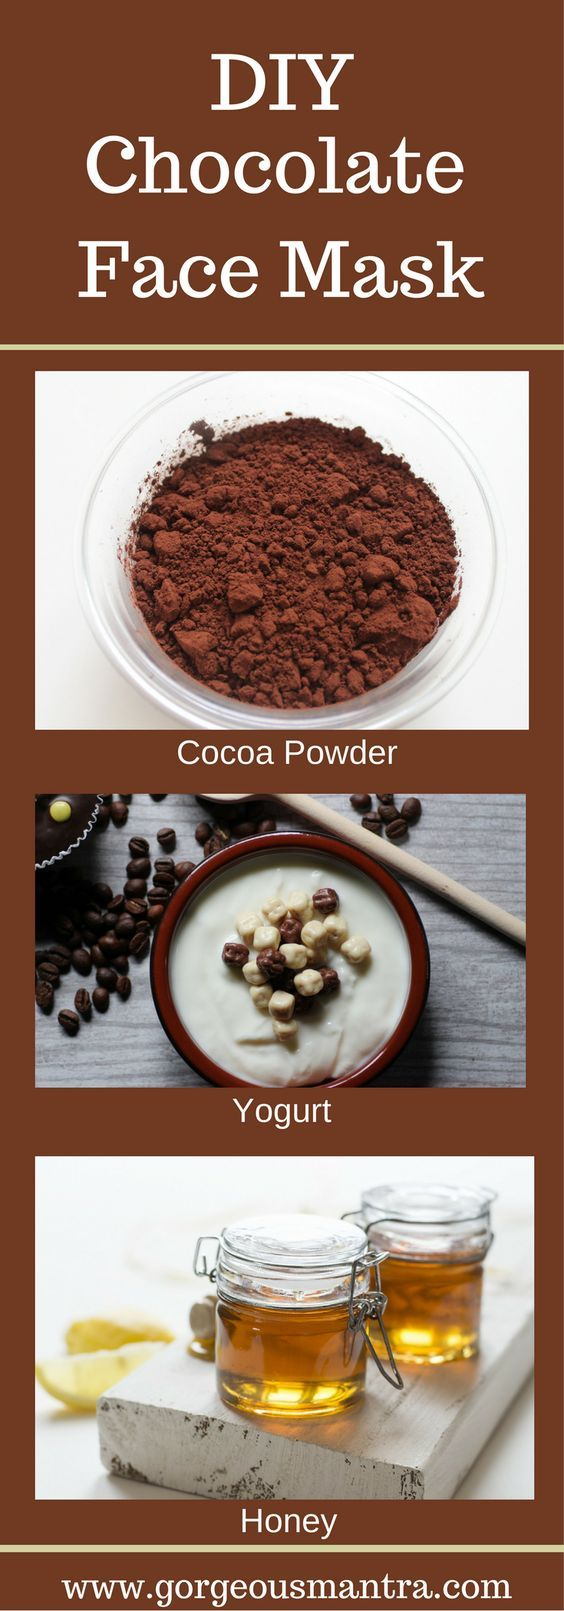 Pamper your skin with a DIY Chocolate Mask. This homemade face mask is full of antioxidants and is great for the skin.